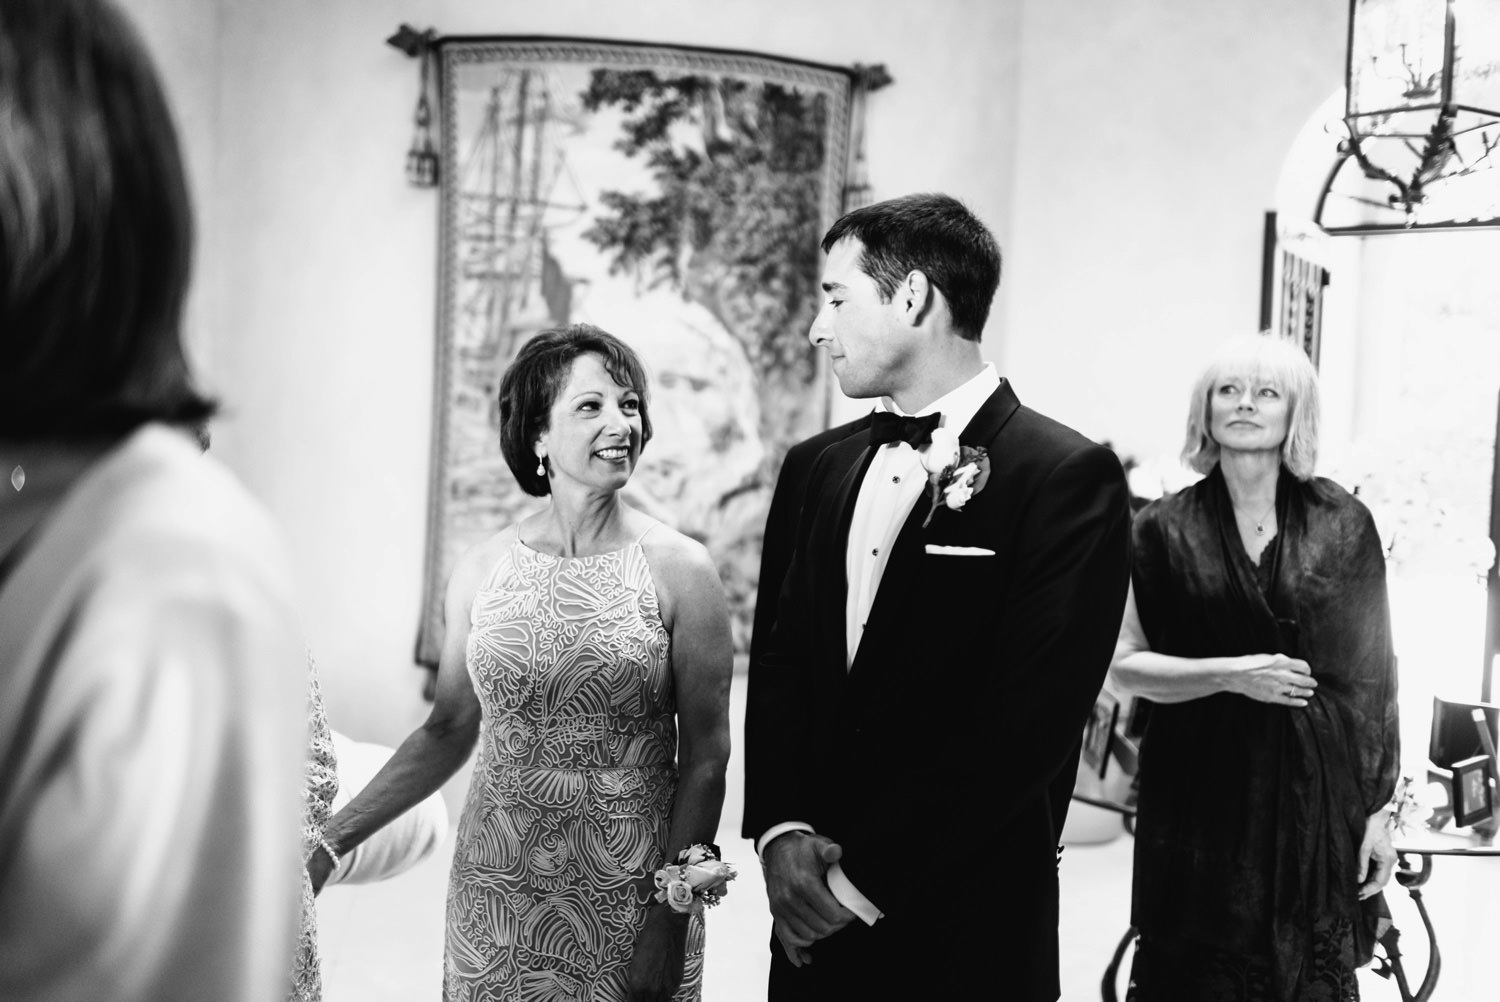 emotional glance between mother and son - montecito wedding photography